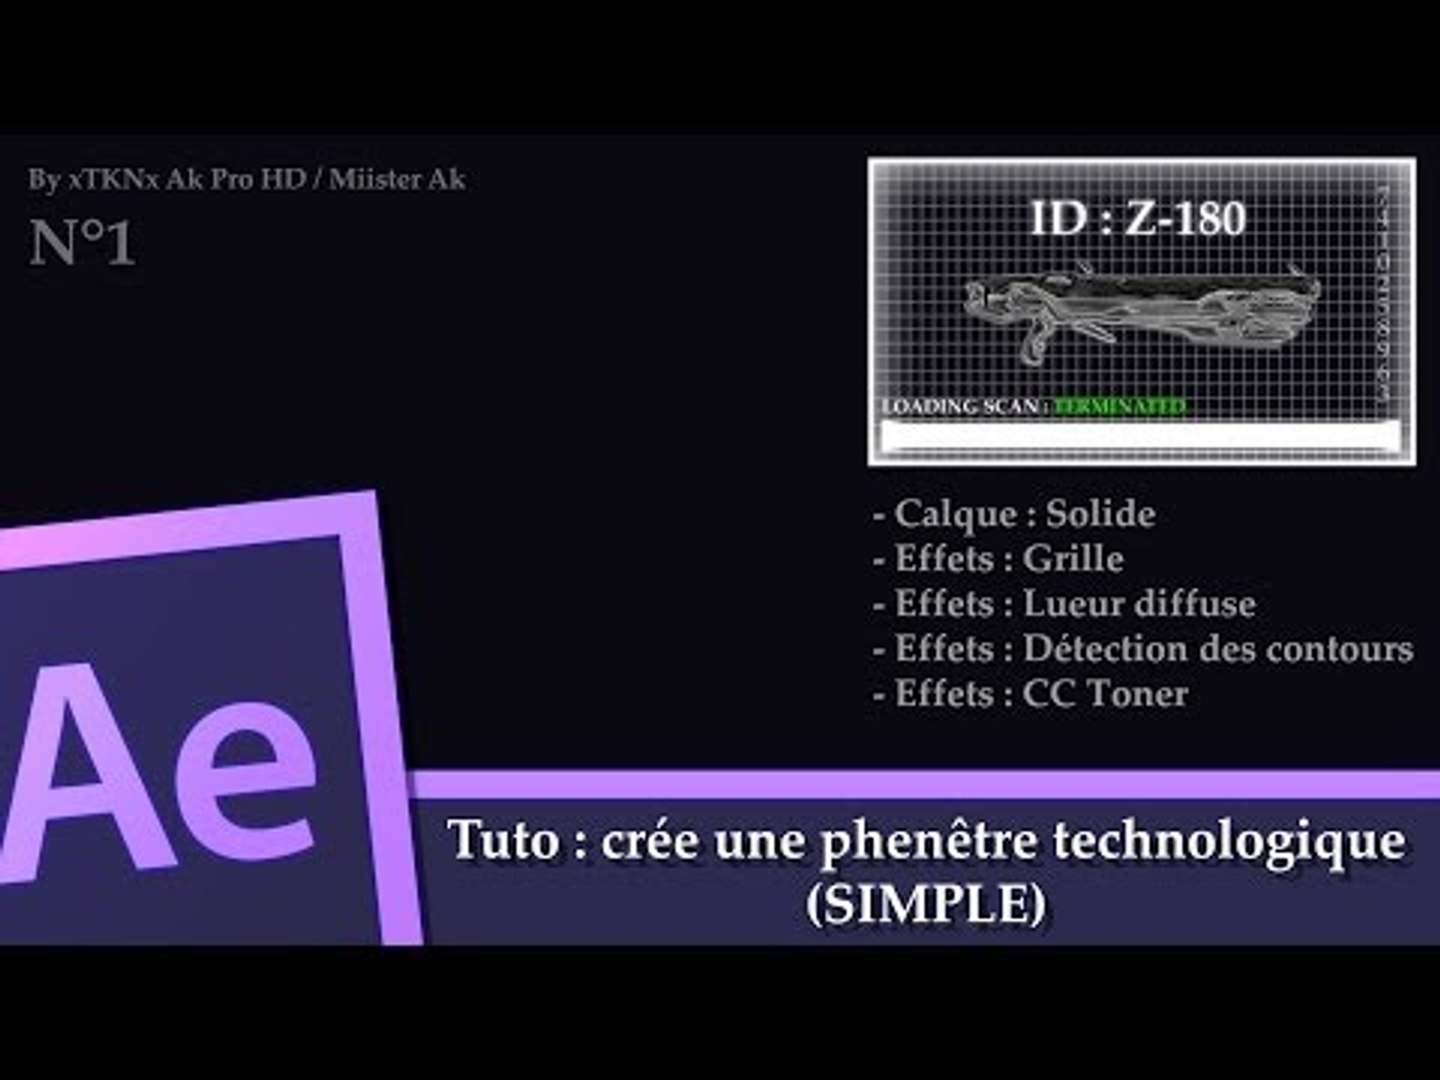 Tuto After Effect : N°1 Crée une fenêtre technologique  (simple)